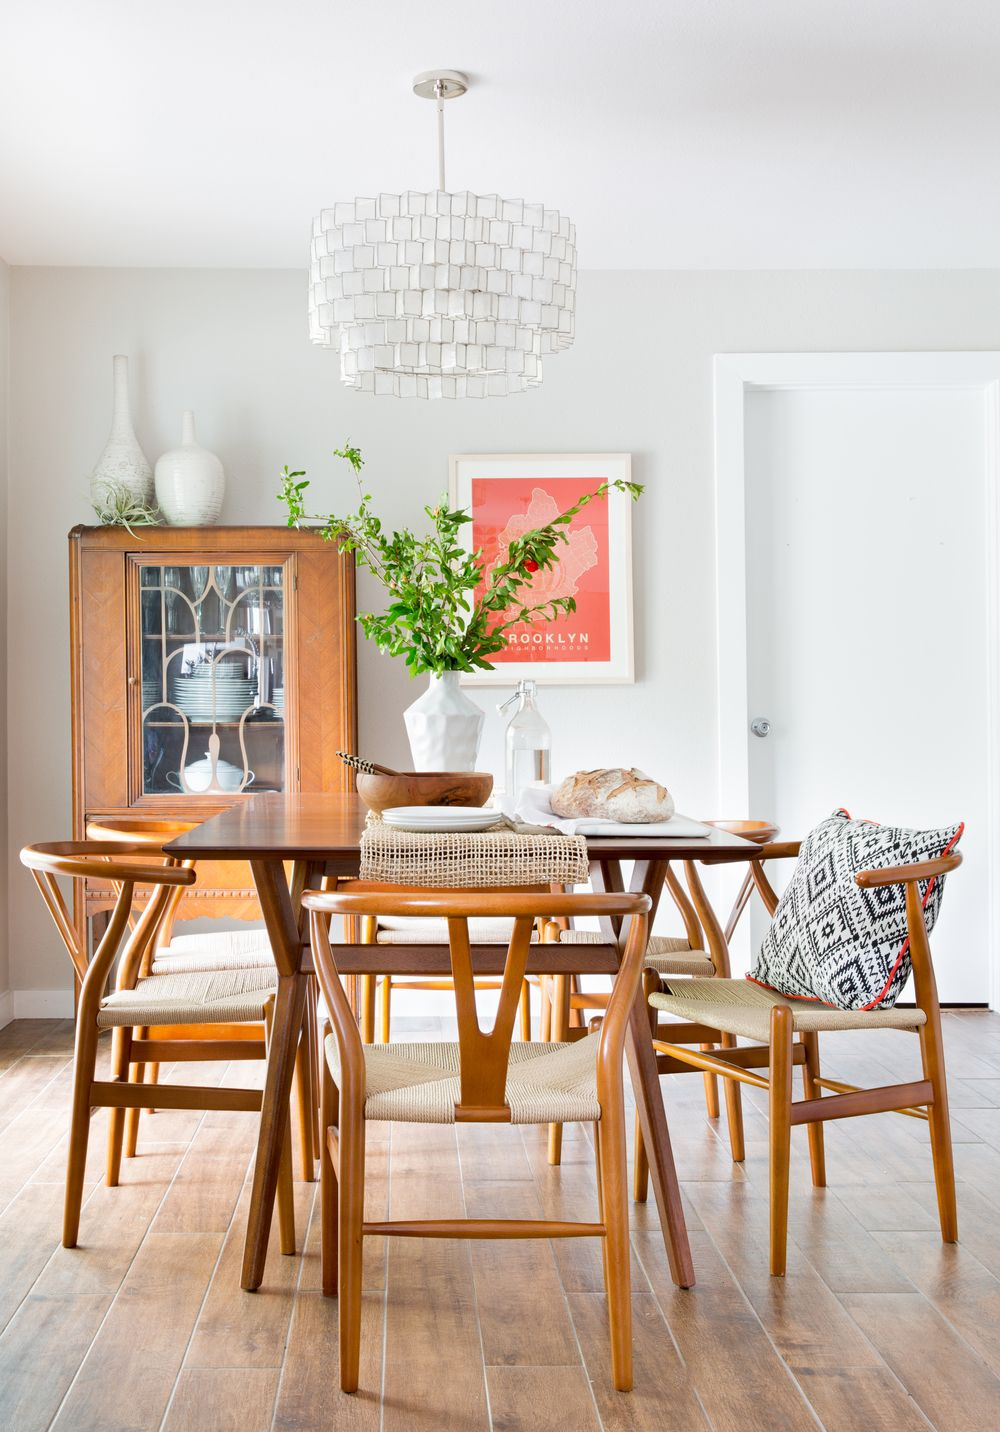 mid century kitchen chairs Mid century modern dining room with a wood dining table diningroominspiration homedecor interiordesign COLLAB Home Decor Inspiration Pinterest